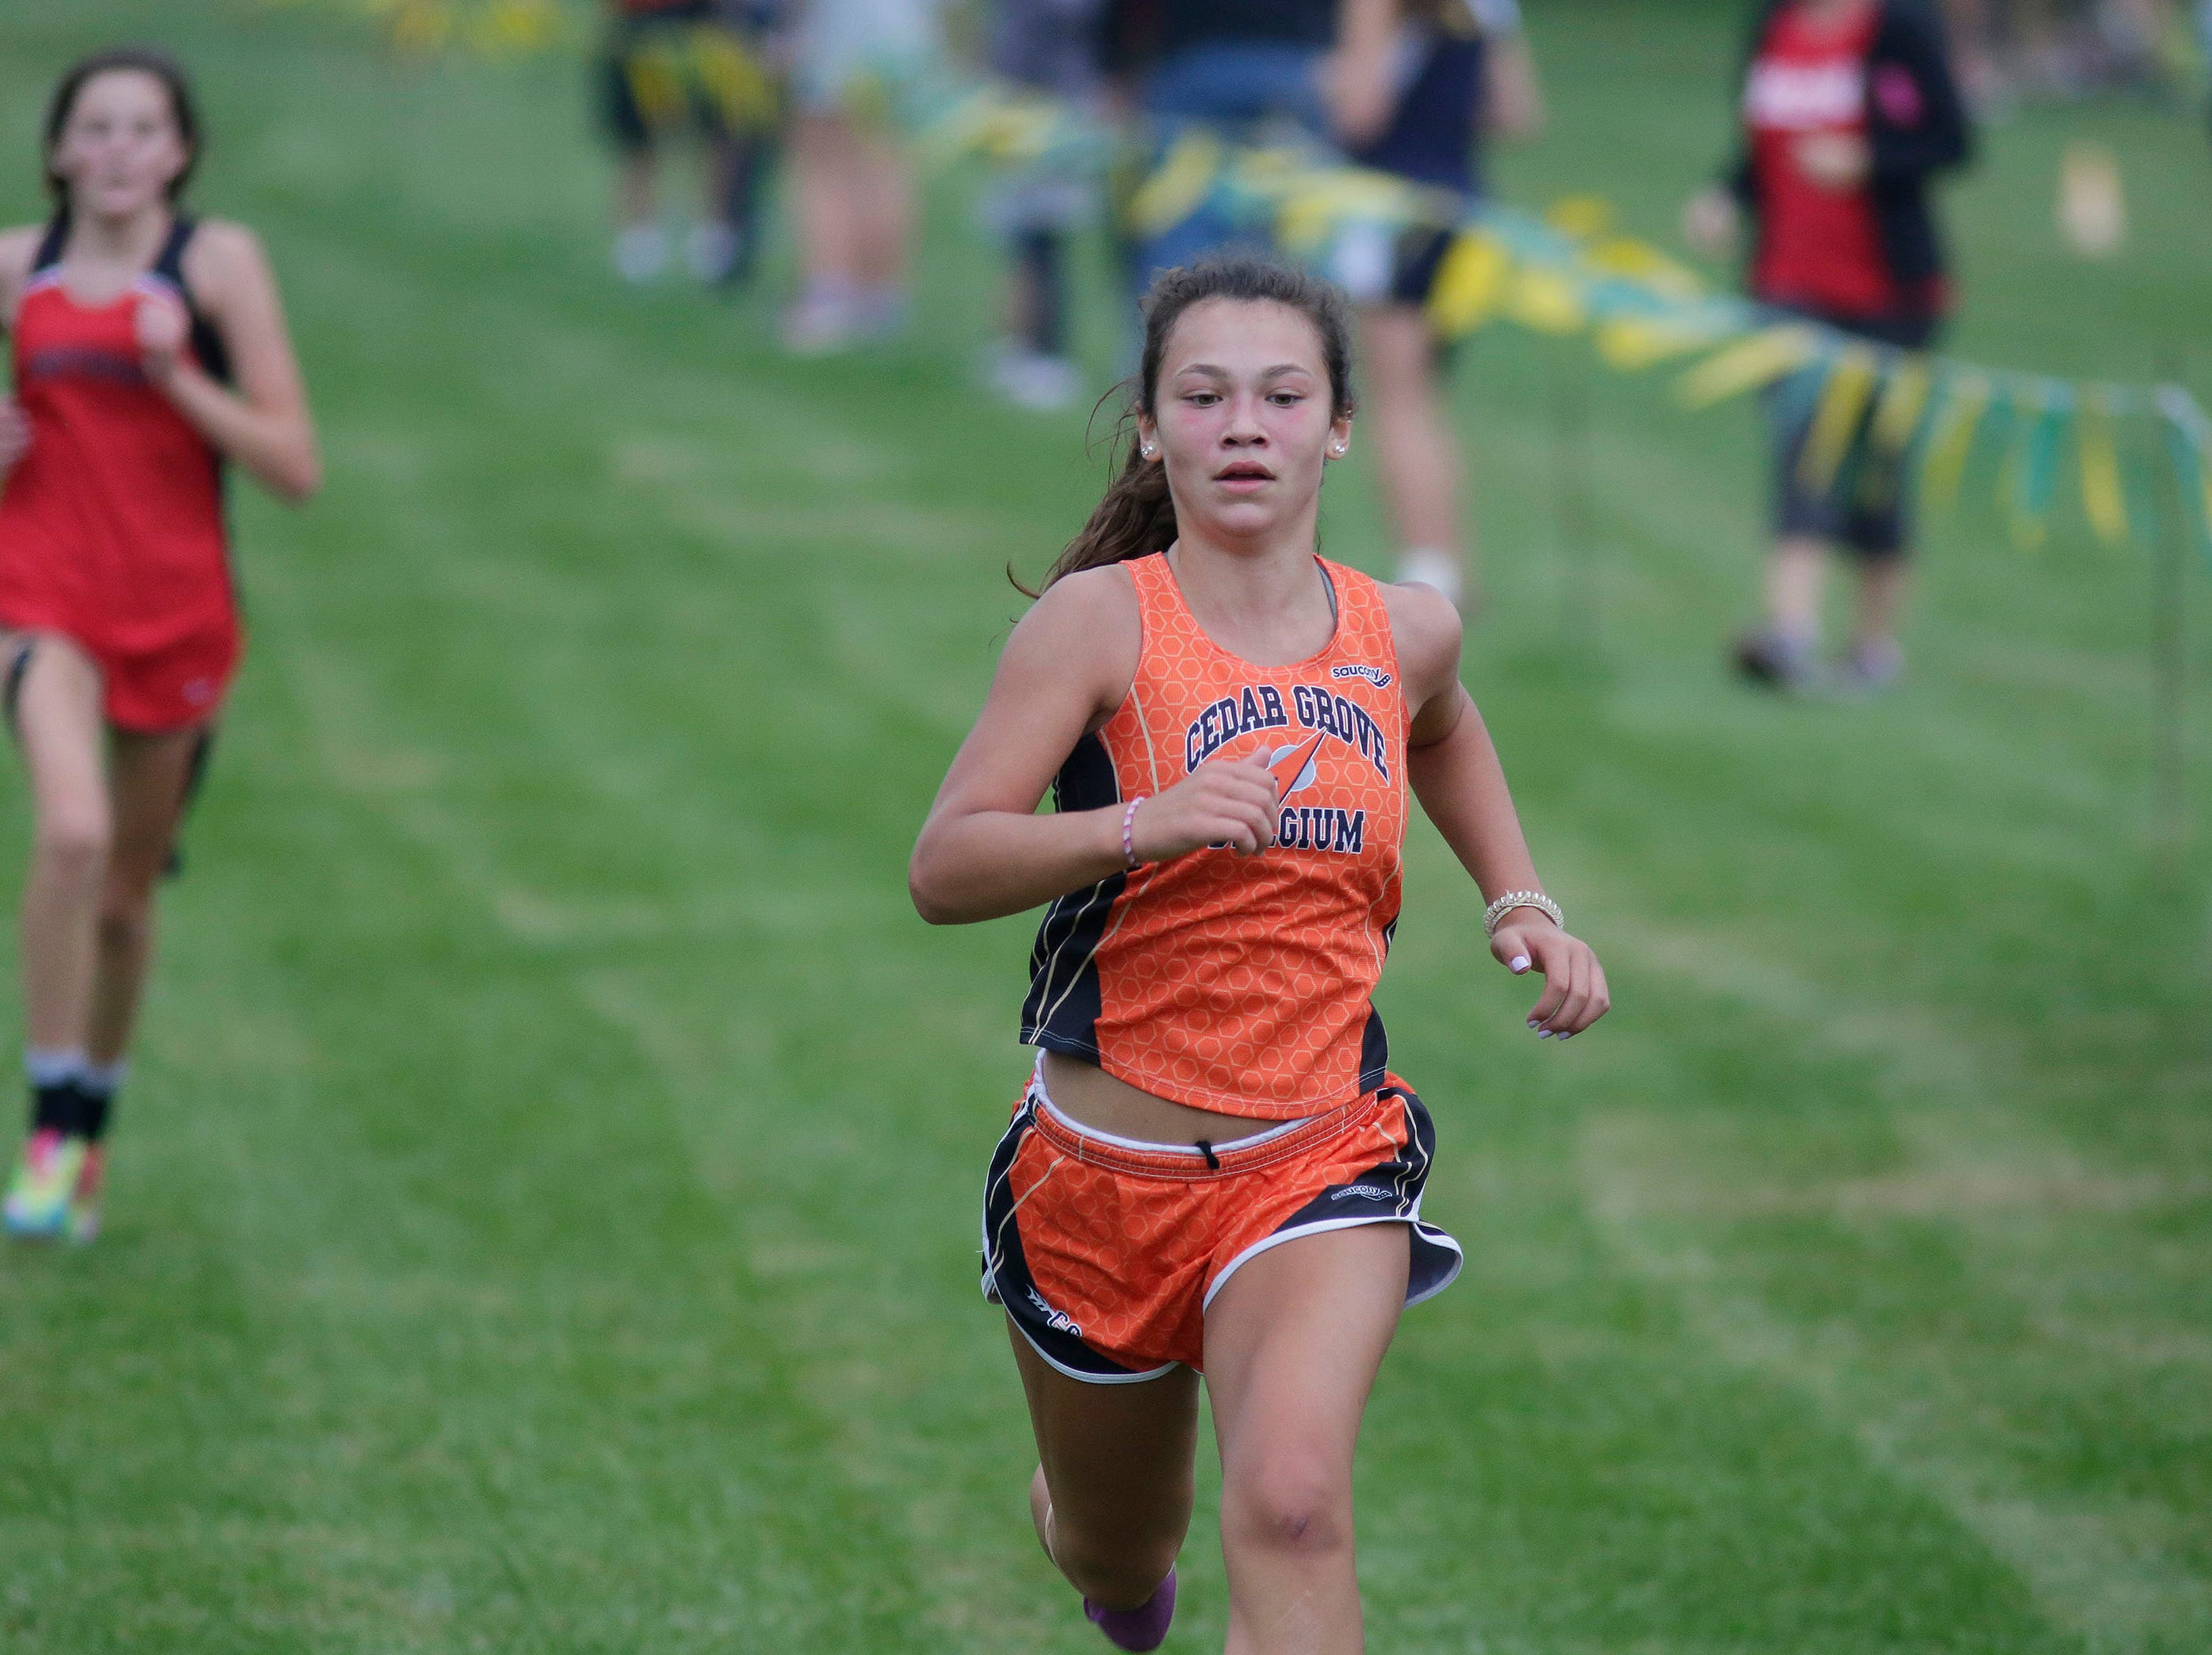 A Cedar Grove-Belgium runner at the Sheboygan County Cross Country Invitational, Tuesday, September 25, 2018, in Sheboygan, Wis.